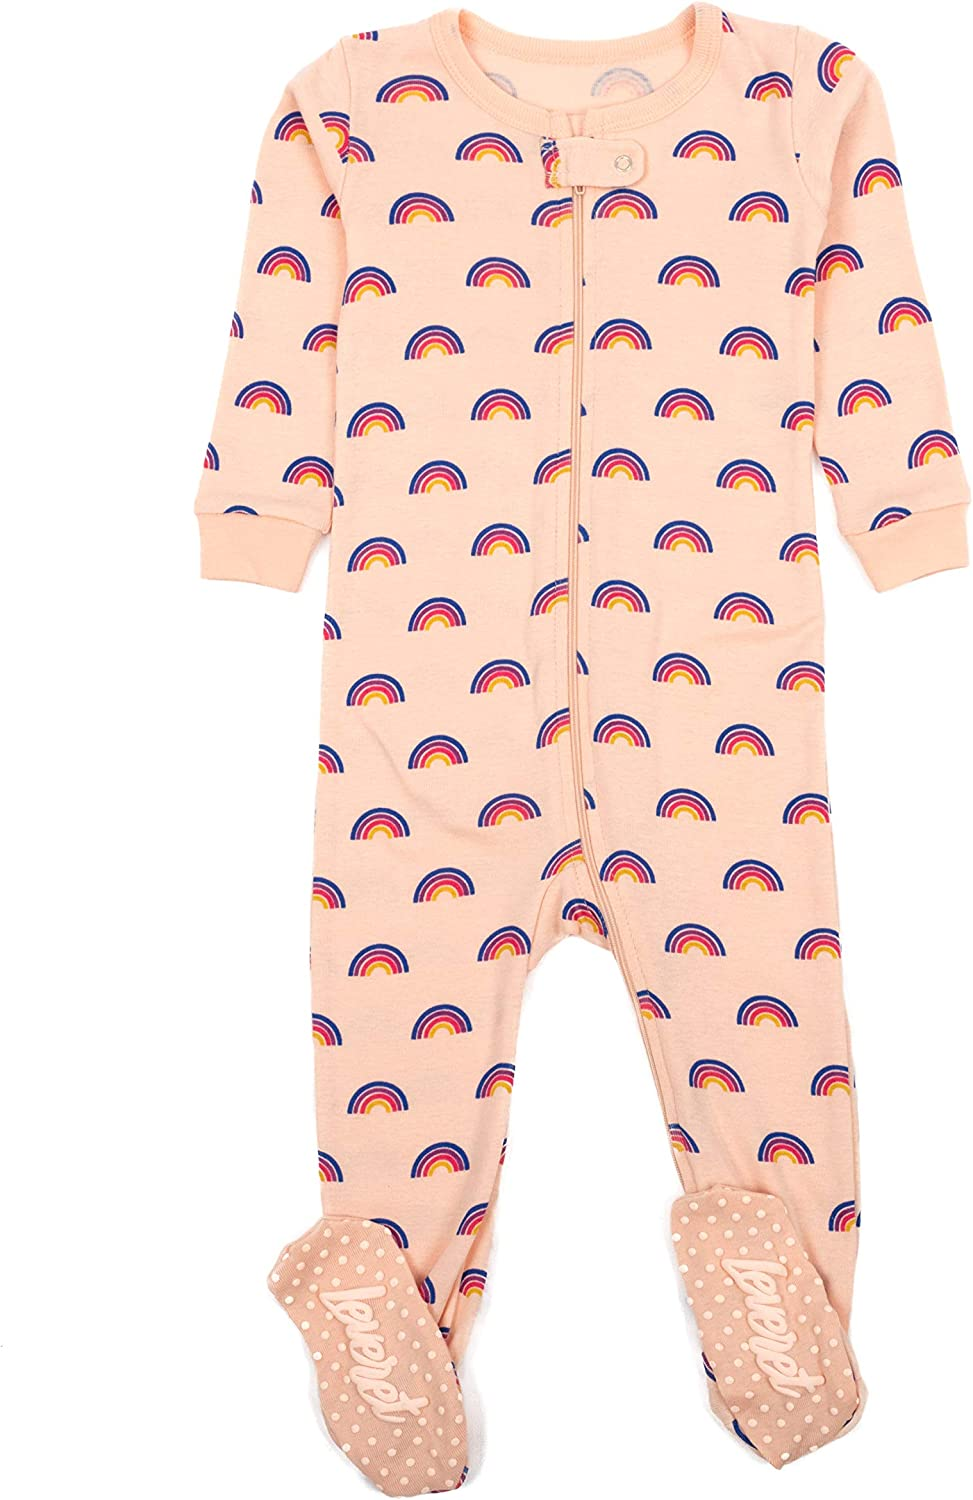 Leveret Kids Pajamas Baby Boys Footed Girls Sleeper 100% Max 2021new shipping free shipping 49% OFF